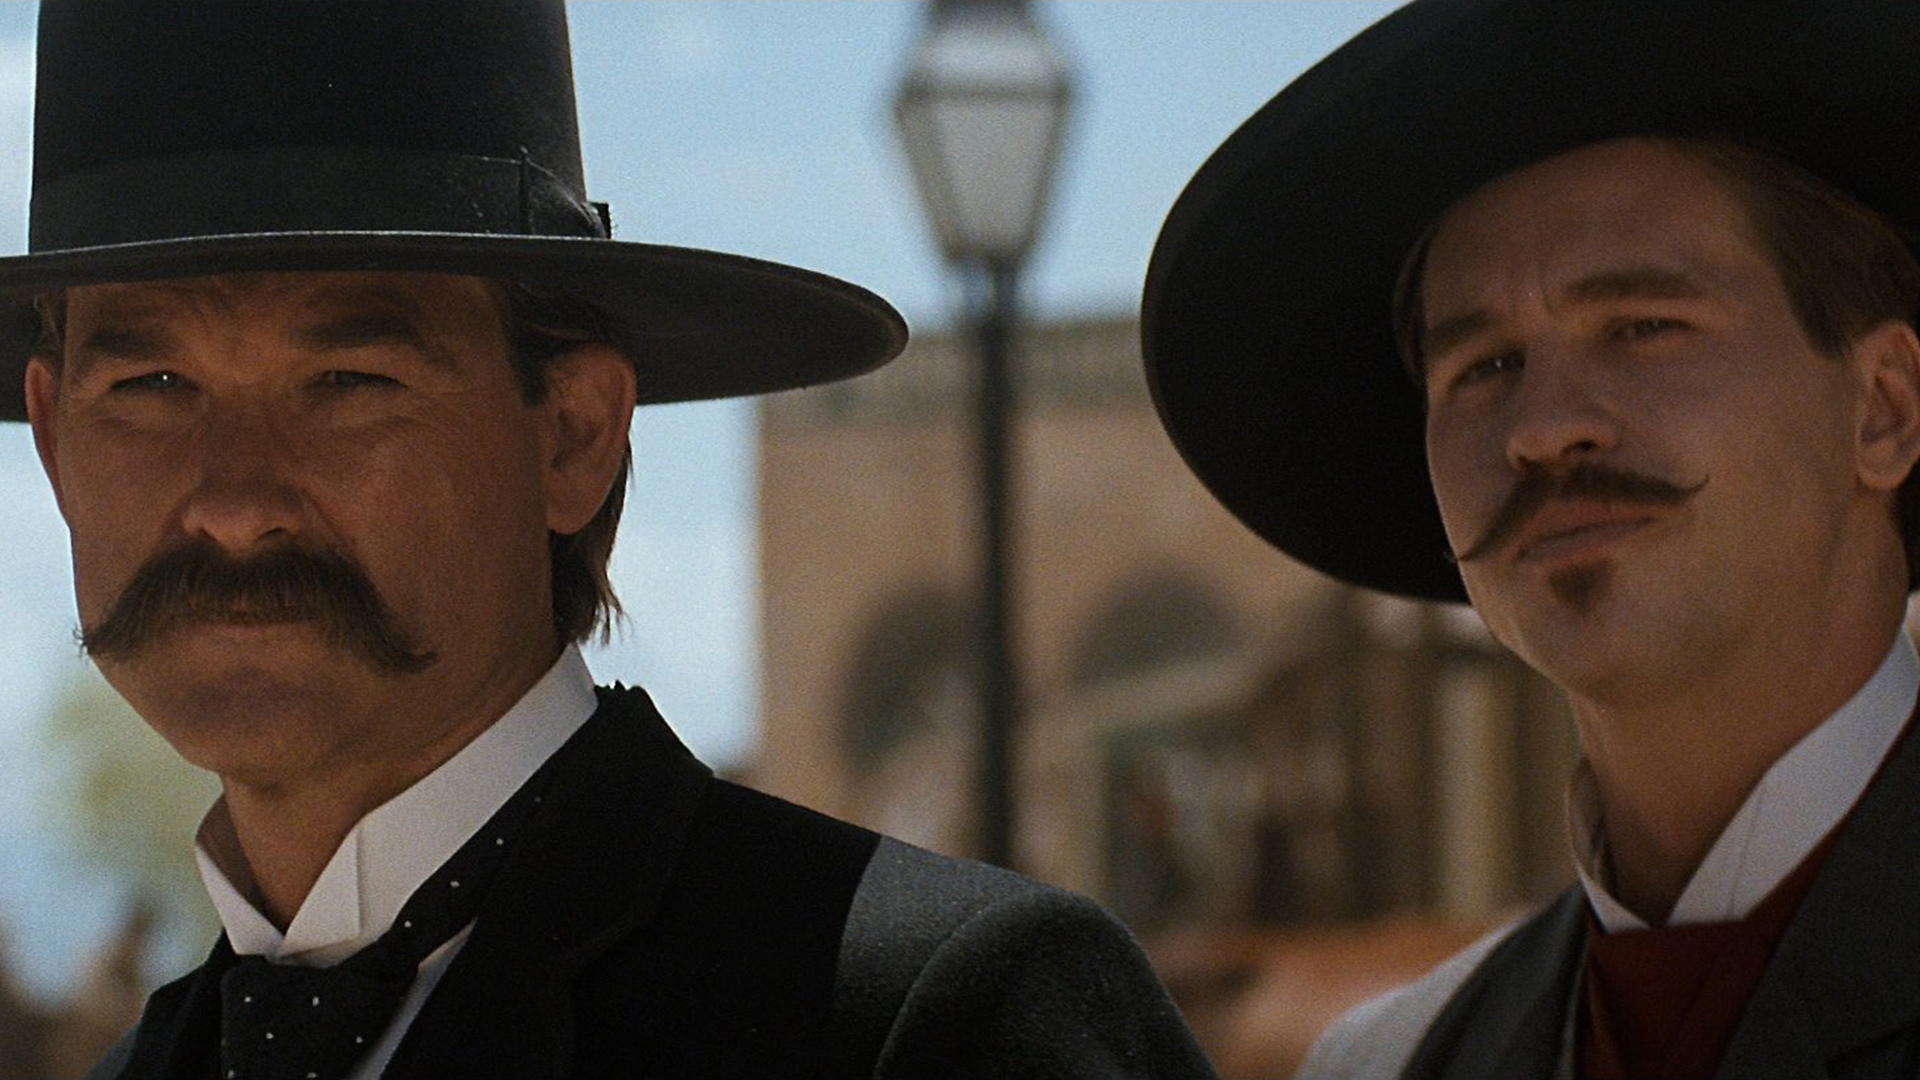 Kurt Russell and Val Kilmer in Tombstone as Wyatt Earp and Doc Holliday | kesseljunkie.com